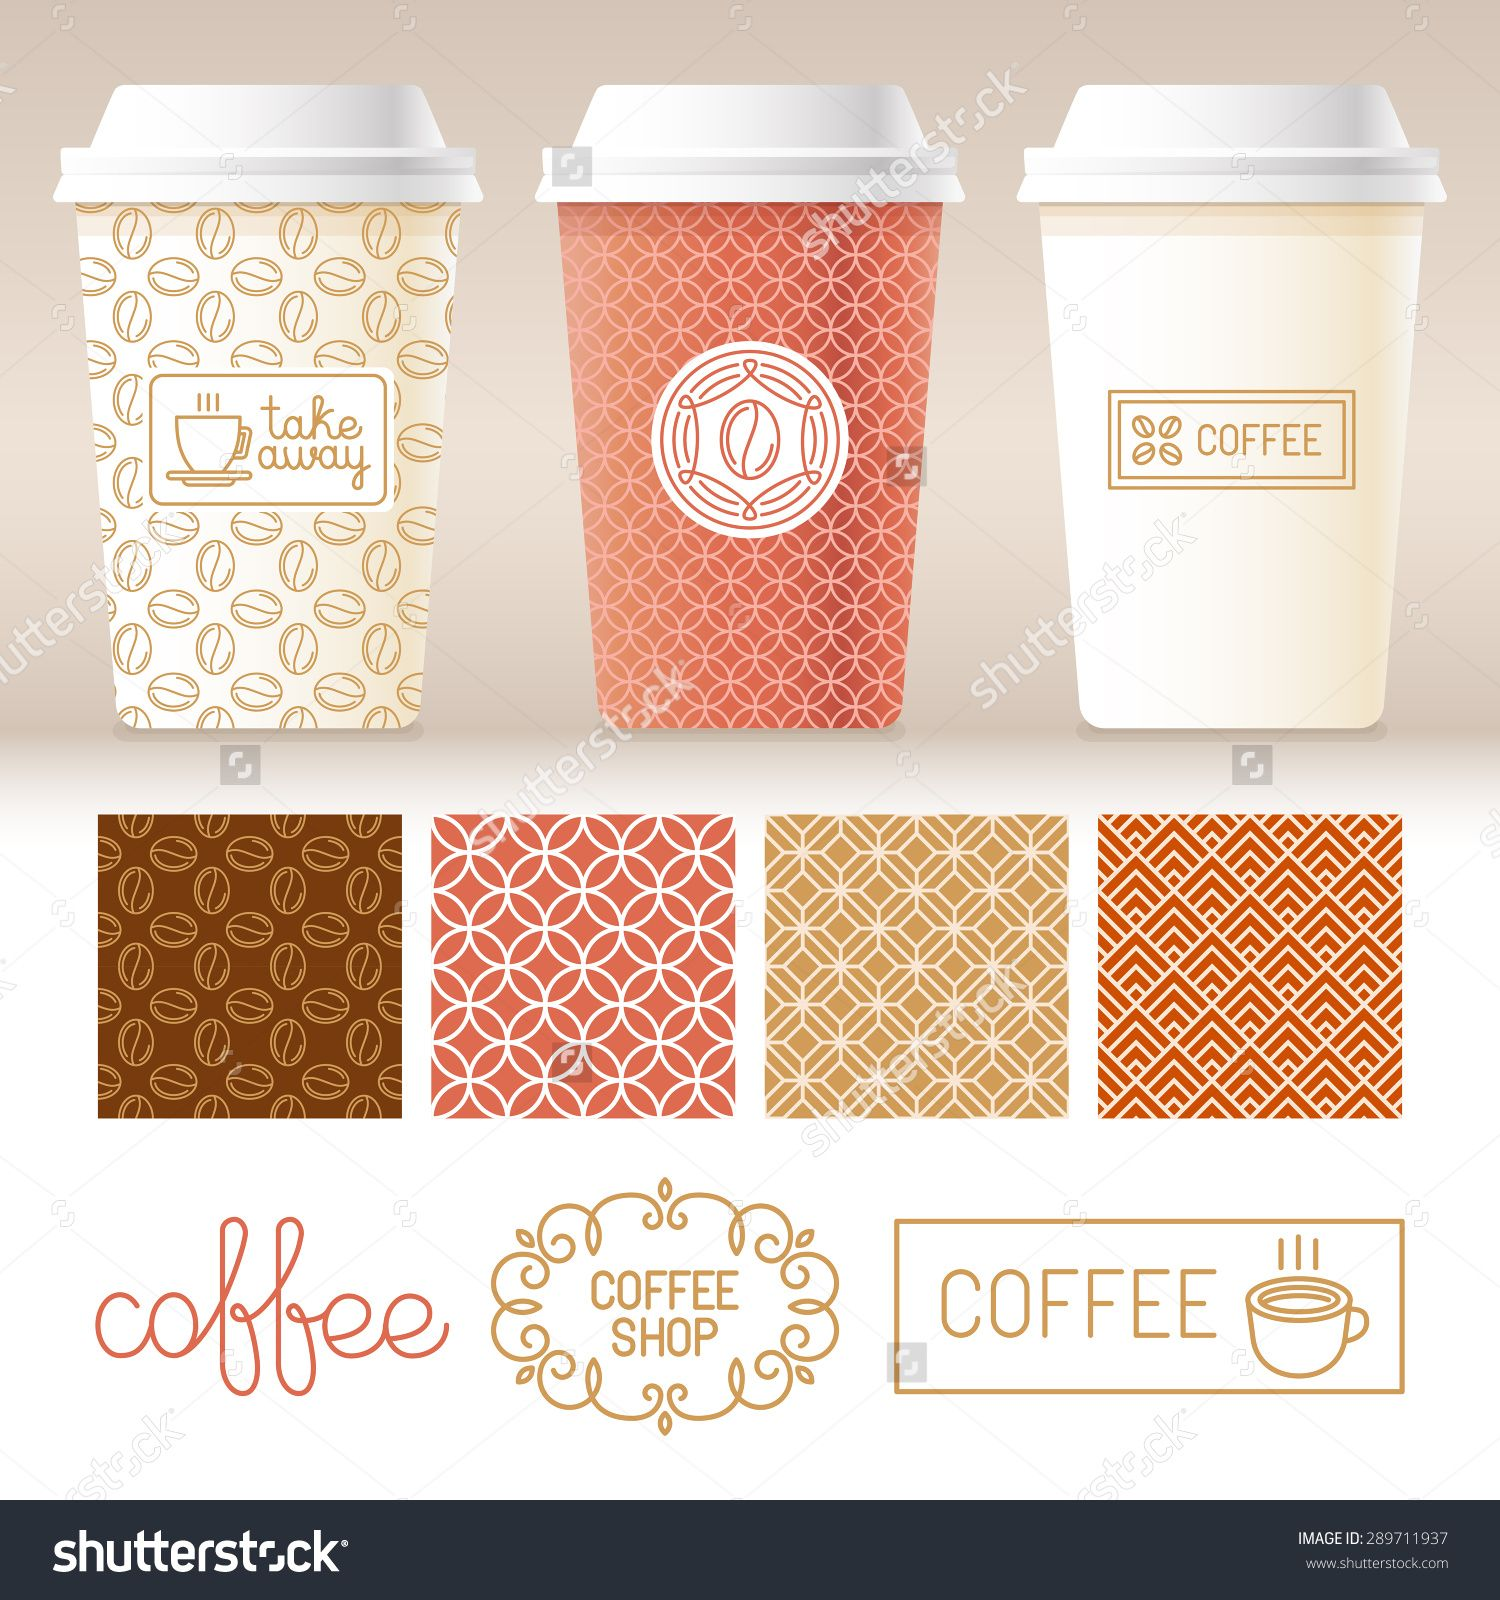 Vector take away coffee packaging templates and design elements vector take away coffee packaging templates and design elements for coffee shops pronofoot35fo Gallery